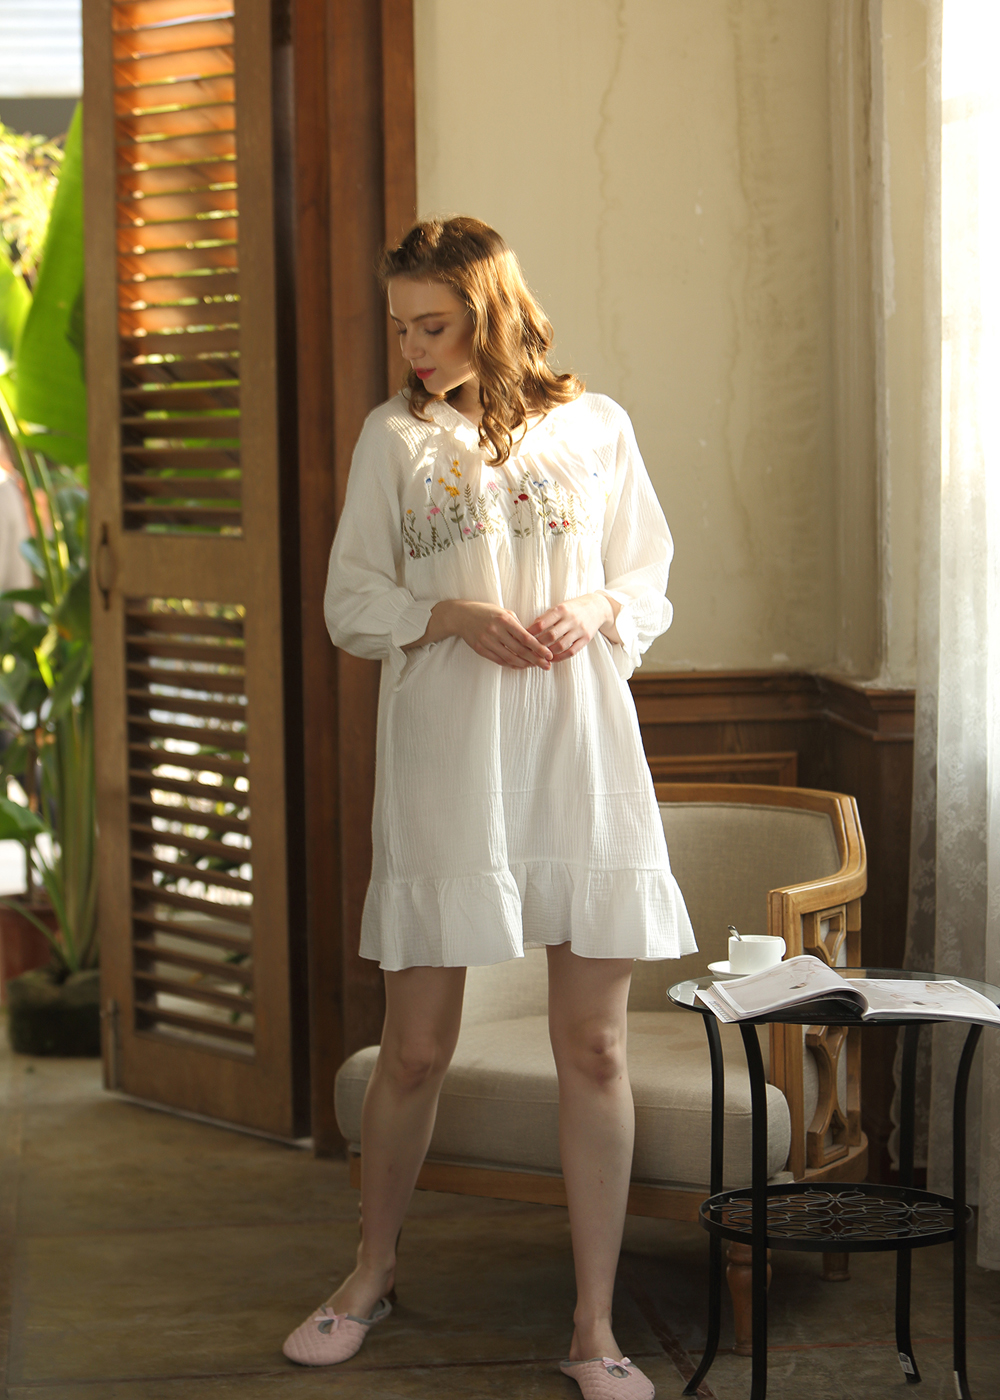 Summer Short Nightdress Women Long Sleeve Cotton Nightgowns Lace Trimming Sleepwear White Palace Princess Dress Flower in Nightgowns Sleepshirts from Underwear Sleepwears